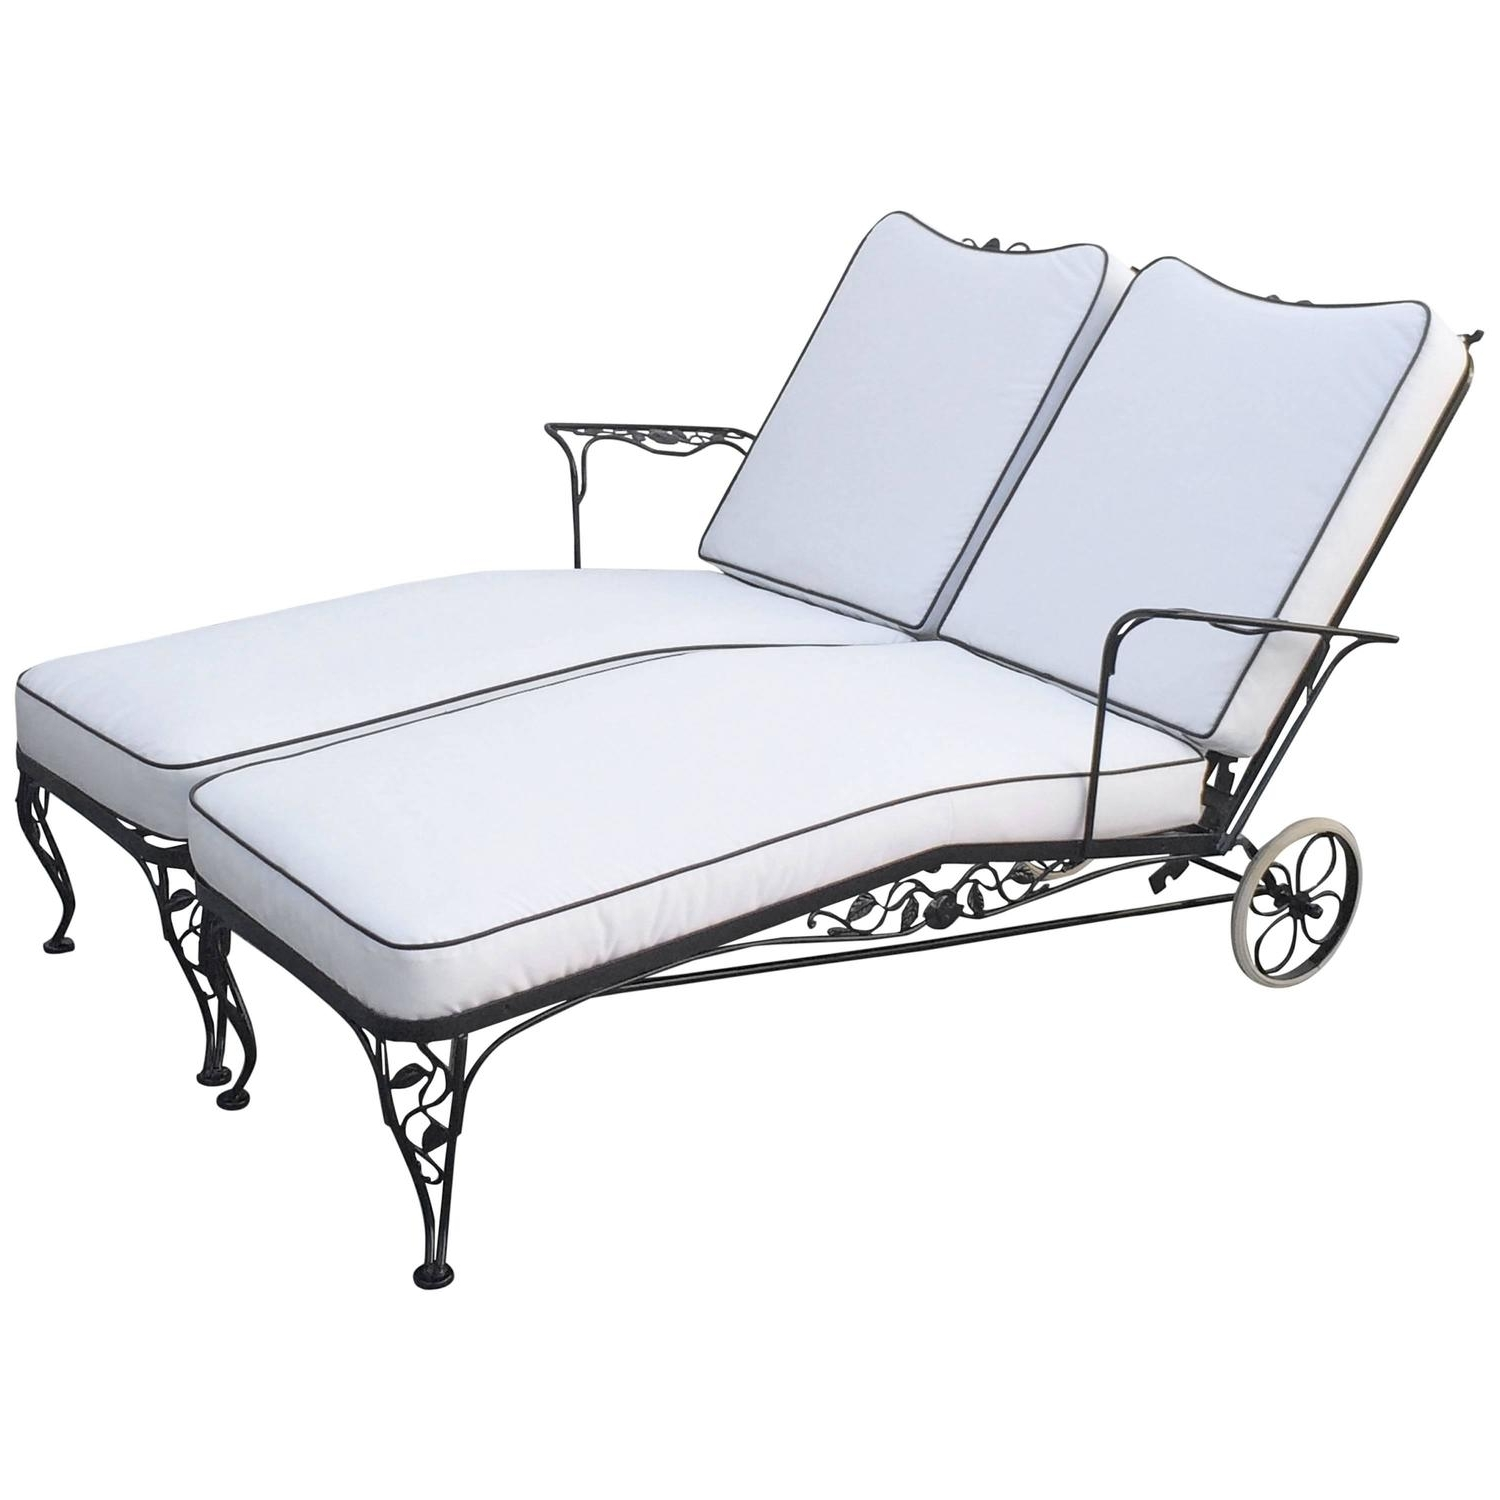 How Sturdy The Awesome Designs Wrought Iron Chaise Lounge Pertaining To Well Known Wrought Iron Chaise Lounges (View 3 of 15)